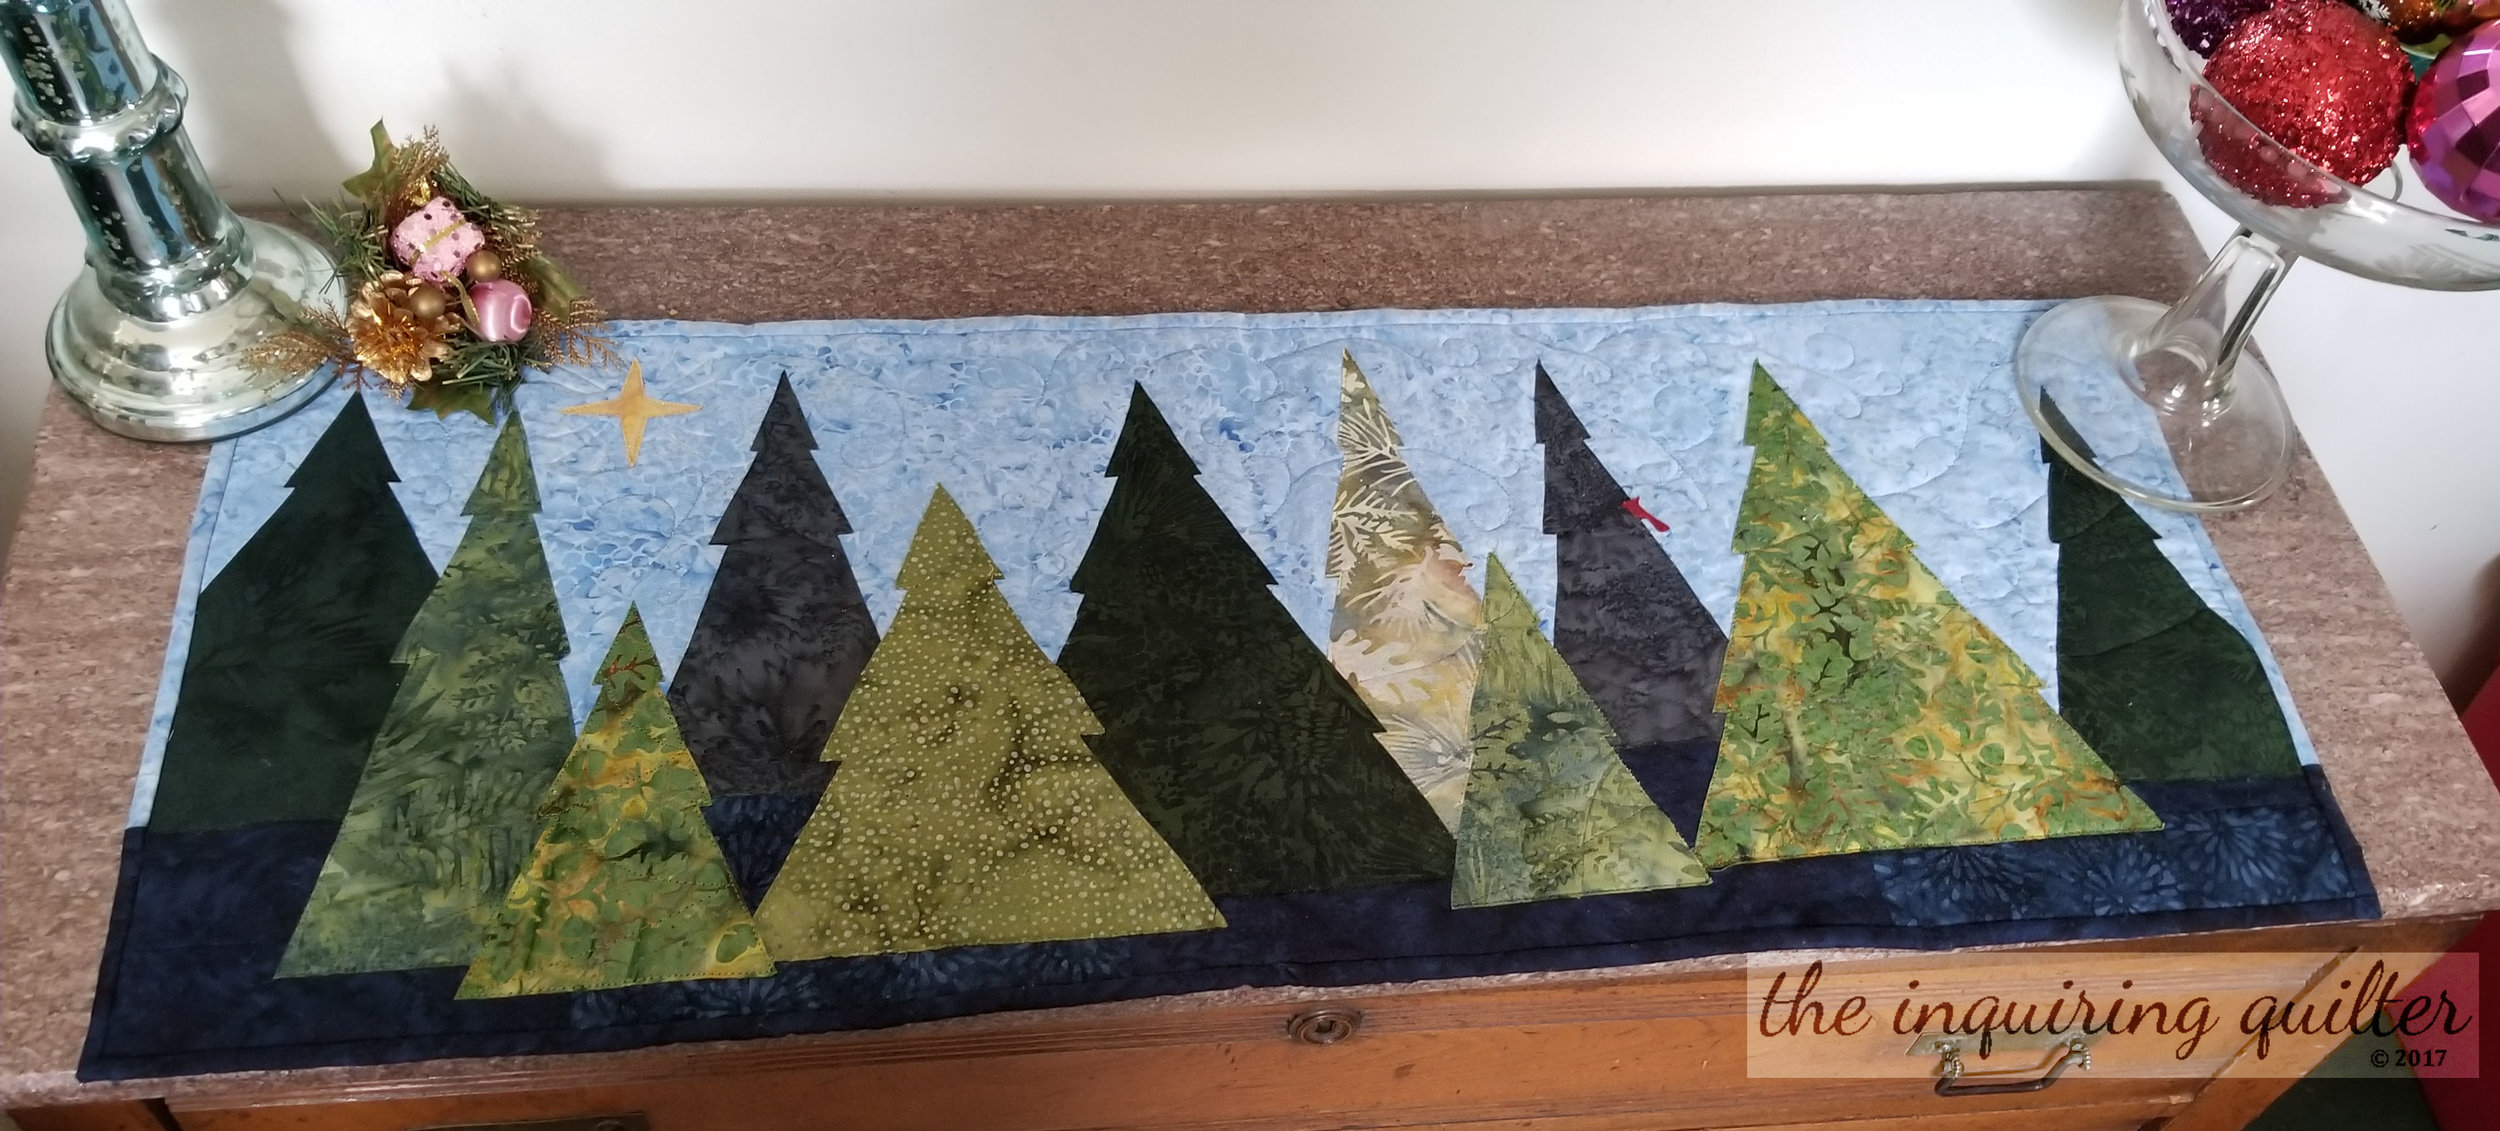 Silent Witness was my Island Batik December 2017 challenge quilt, and one of my favorites for this time of year.